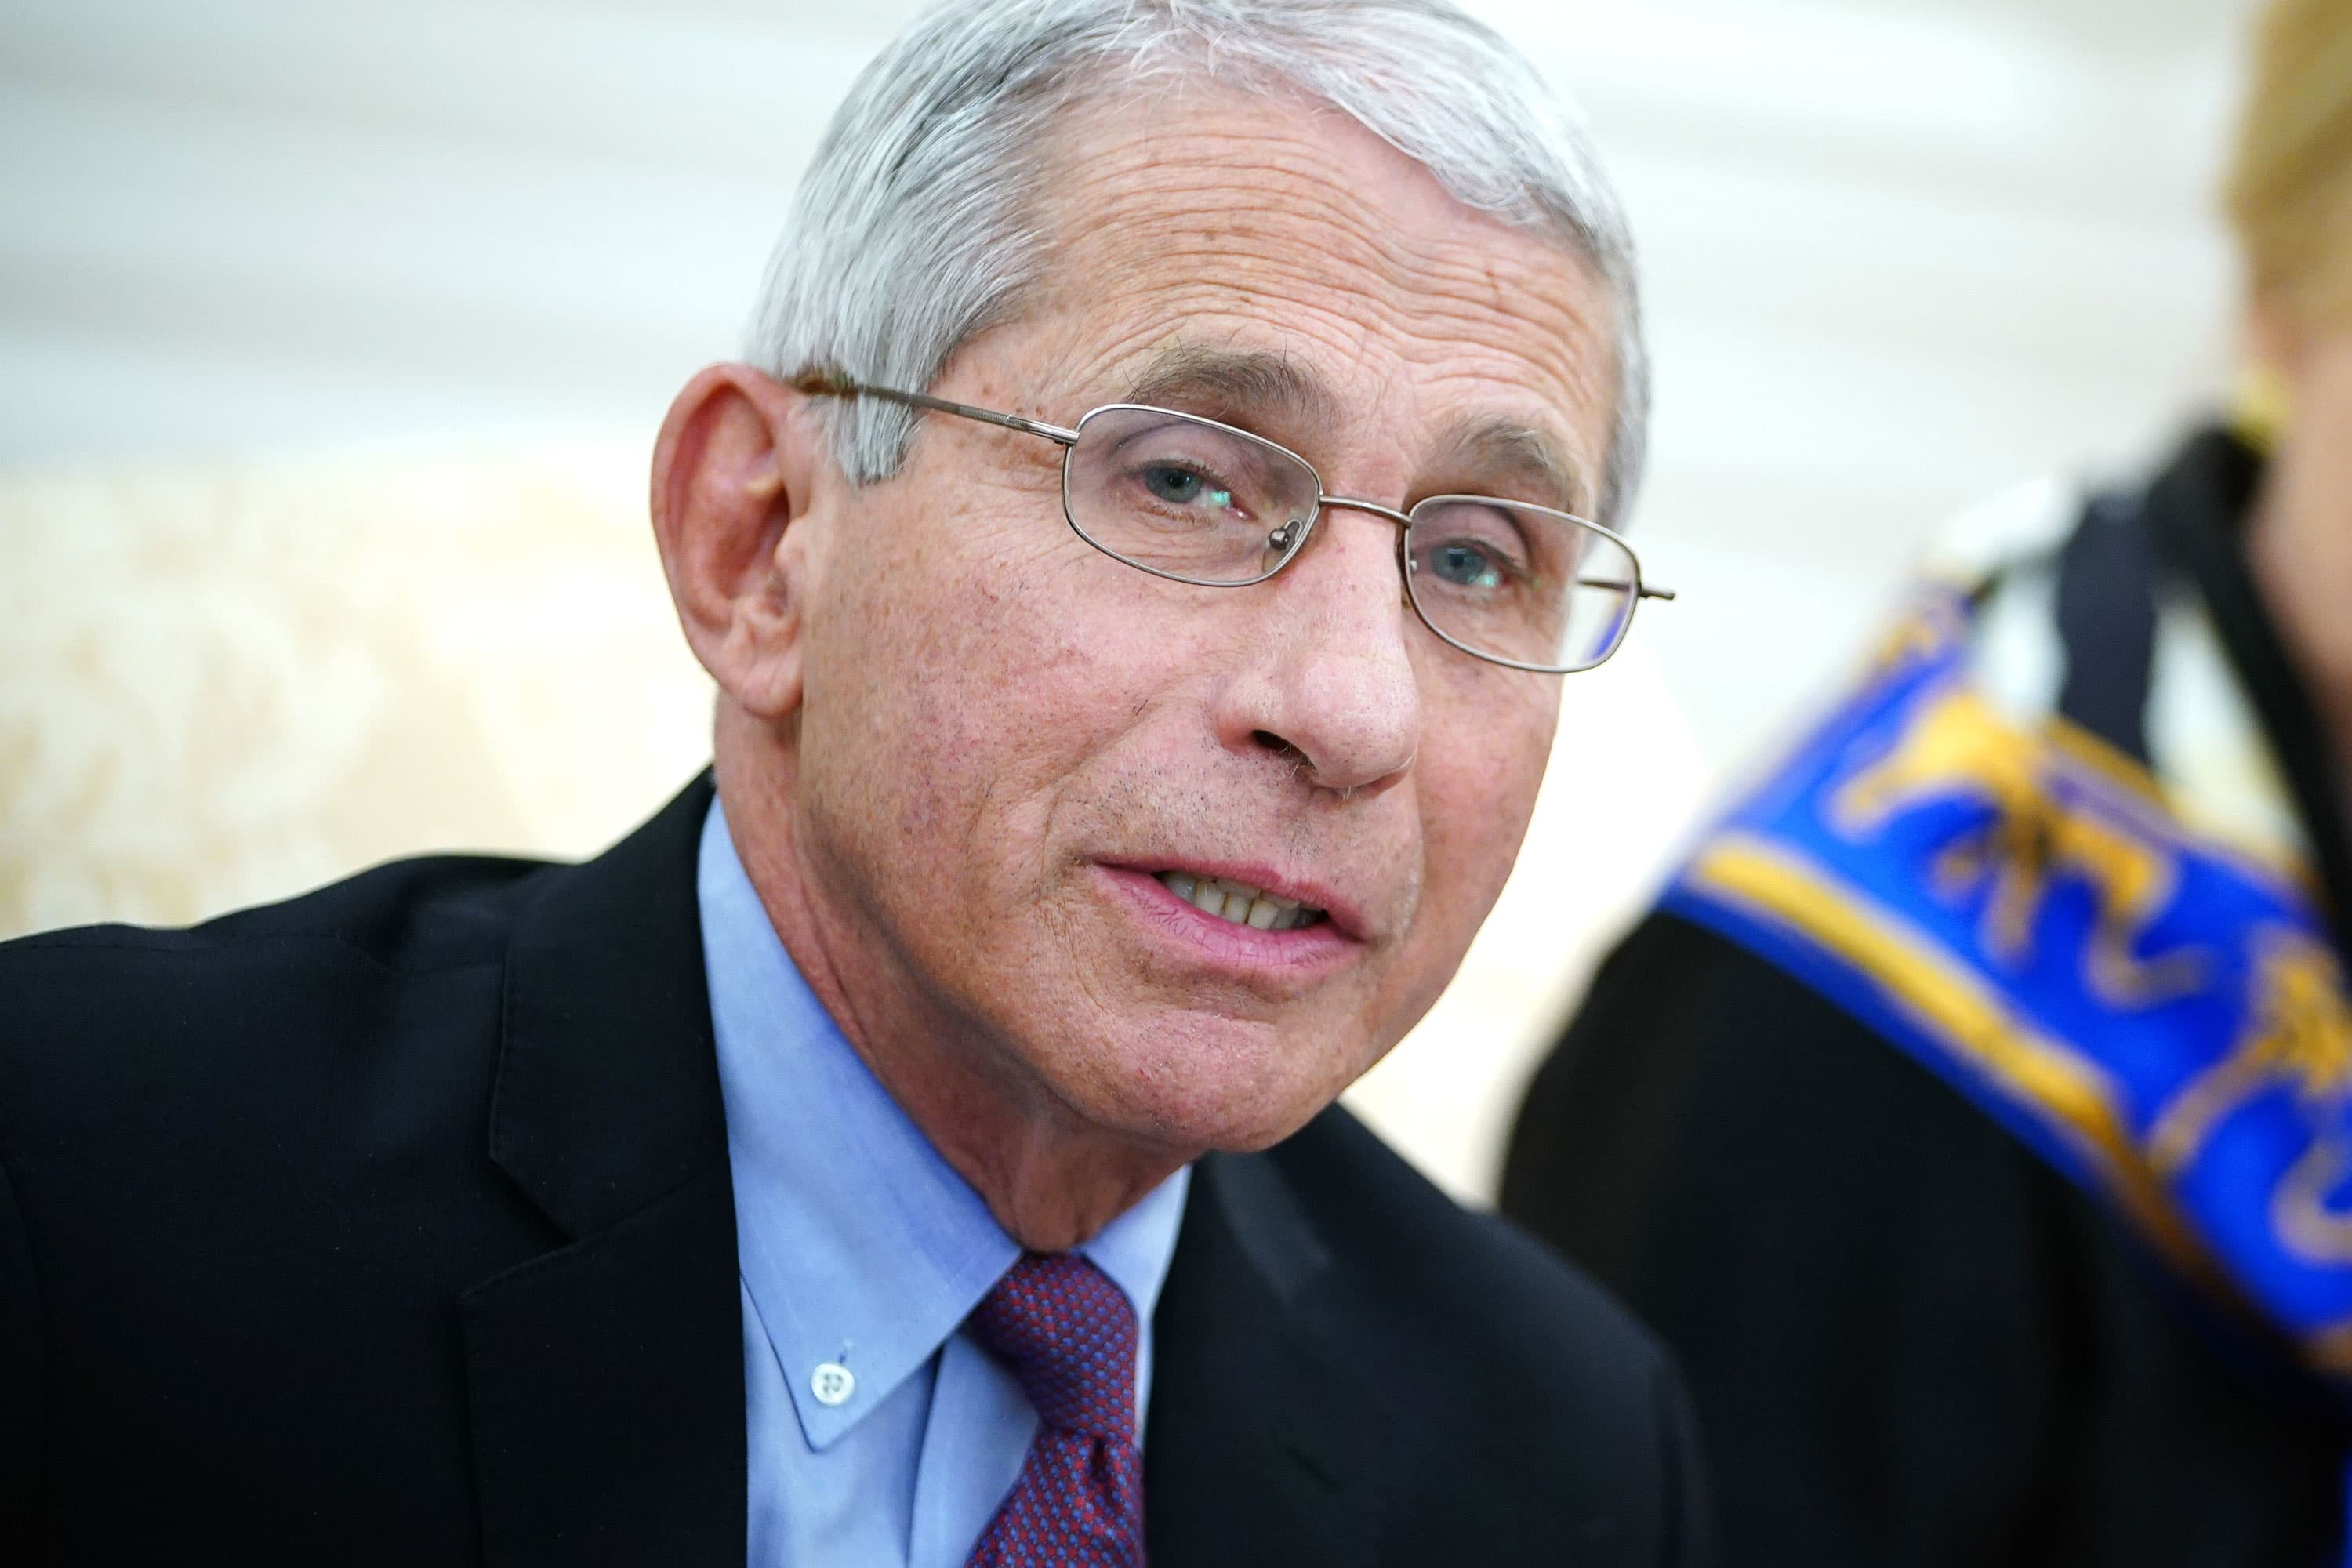 Dr. Anthony Fauci: What a typical day is like during Covid-19 pandemic